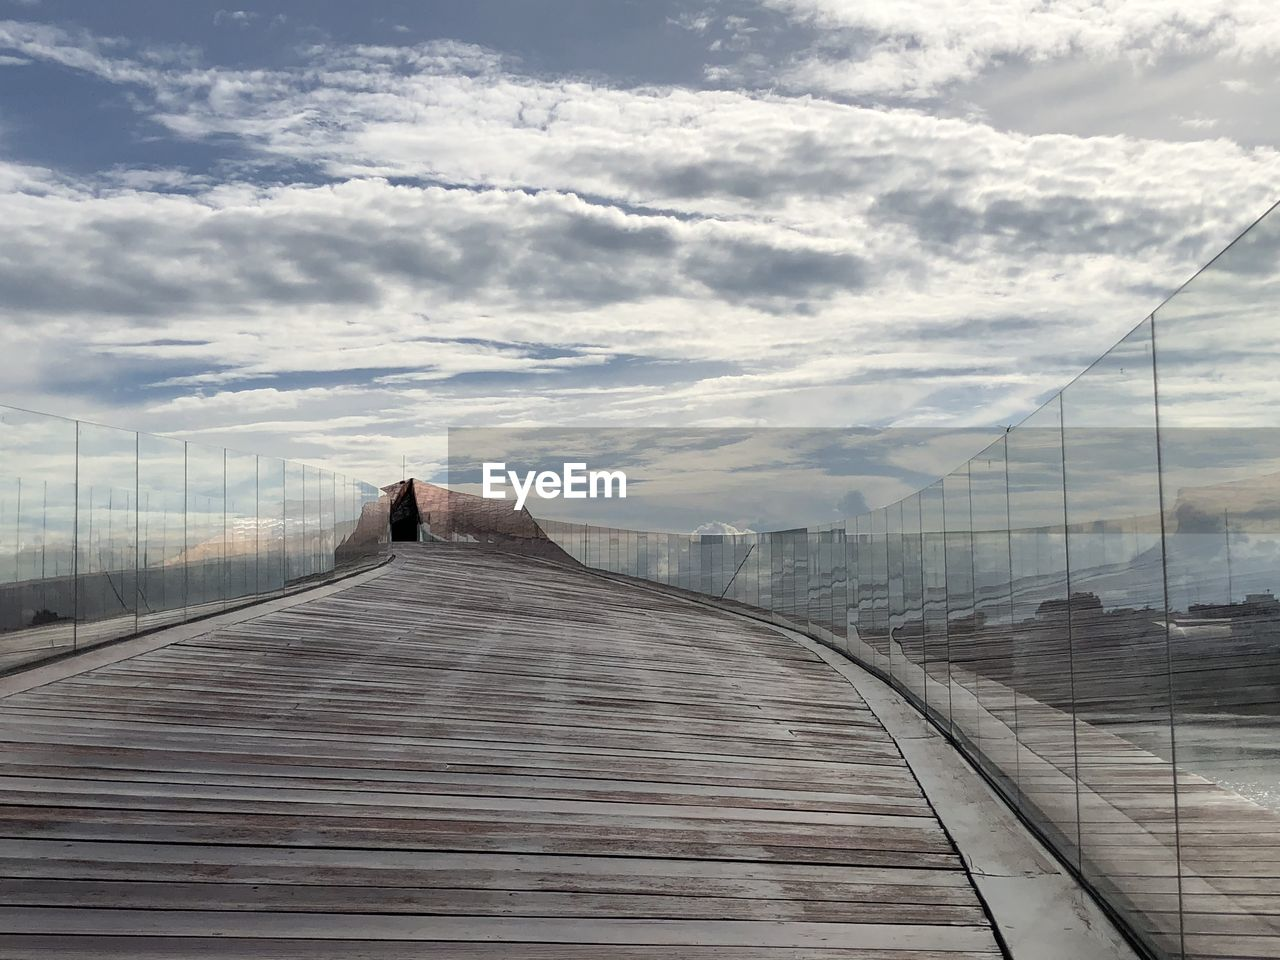 cloud - sky, sky, architecture, direction, built structure, the way forward, nature, day, outdoors, diminishing perspective, building exterior, city, one person, railing, wood - material, real people, connection, vanishing point, skyscraper